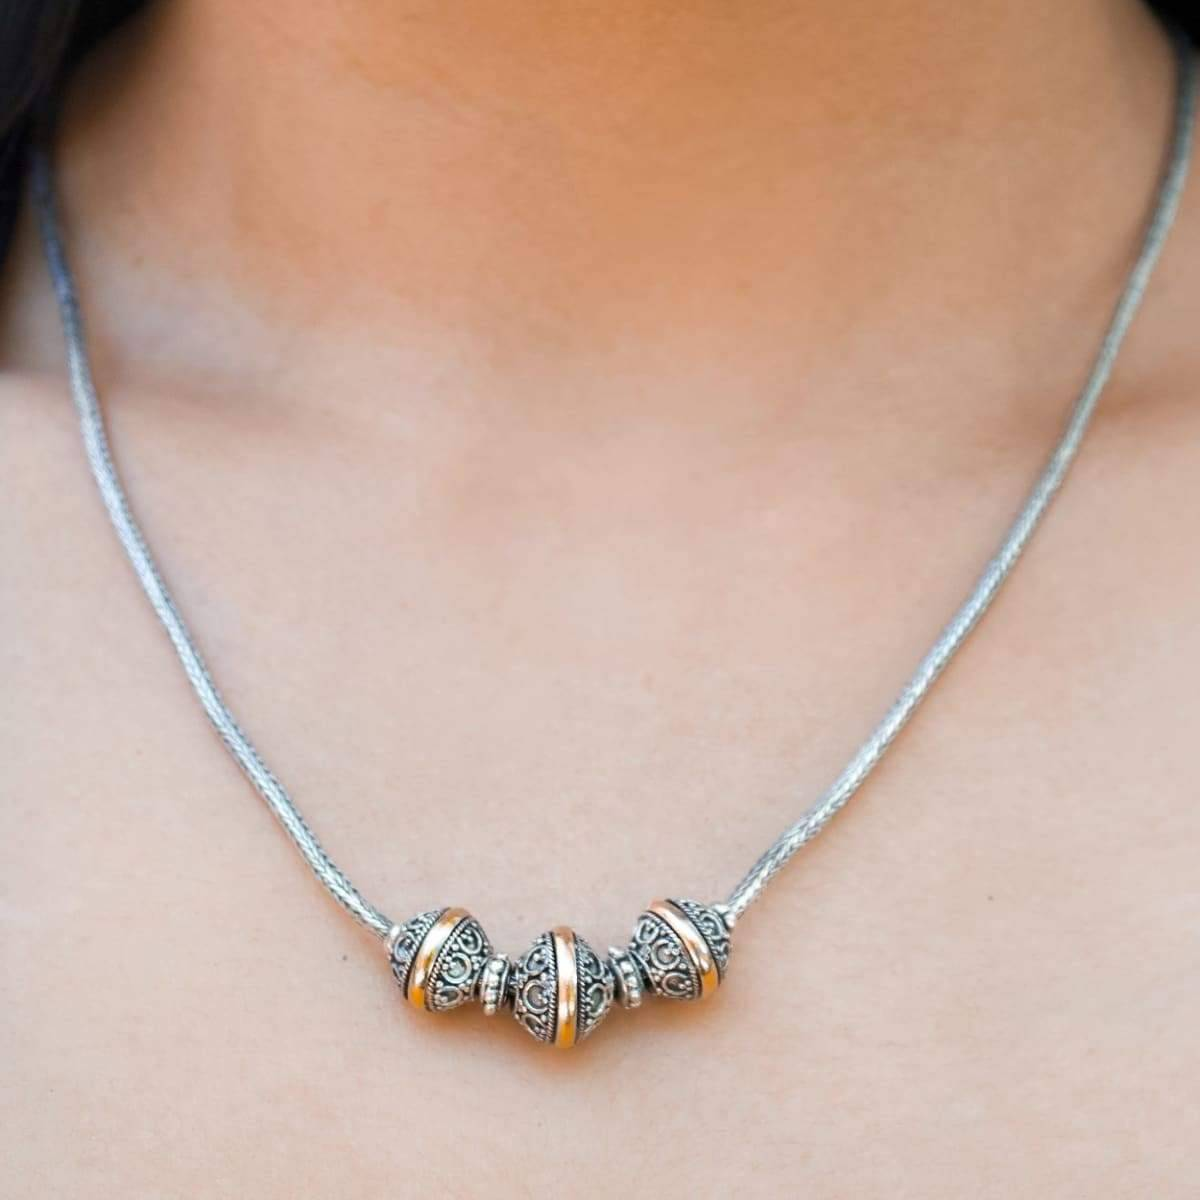 Aurolius Bali Silver Ball Beads Necklace with Gold 18 K Accents, Gift Idea for Her, Handmade jewelry